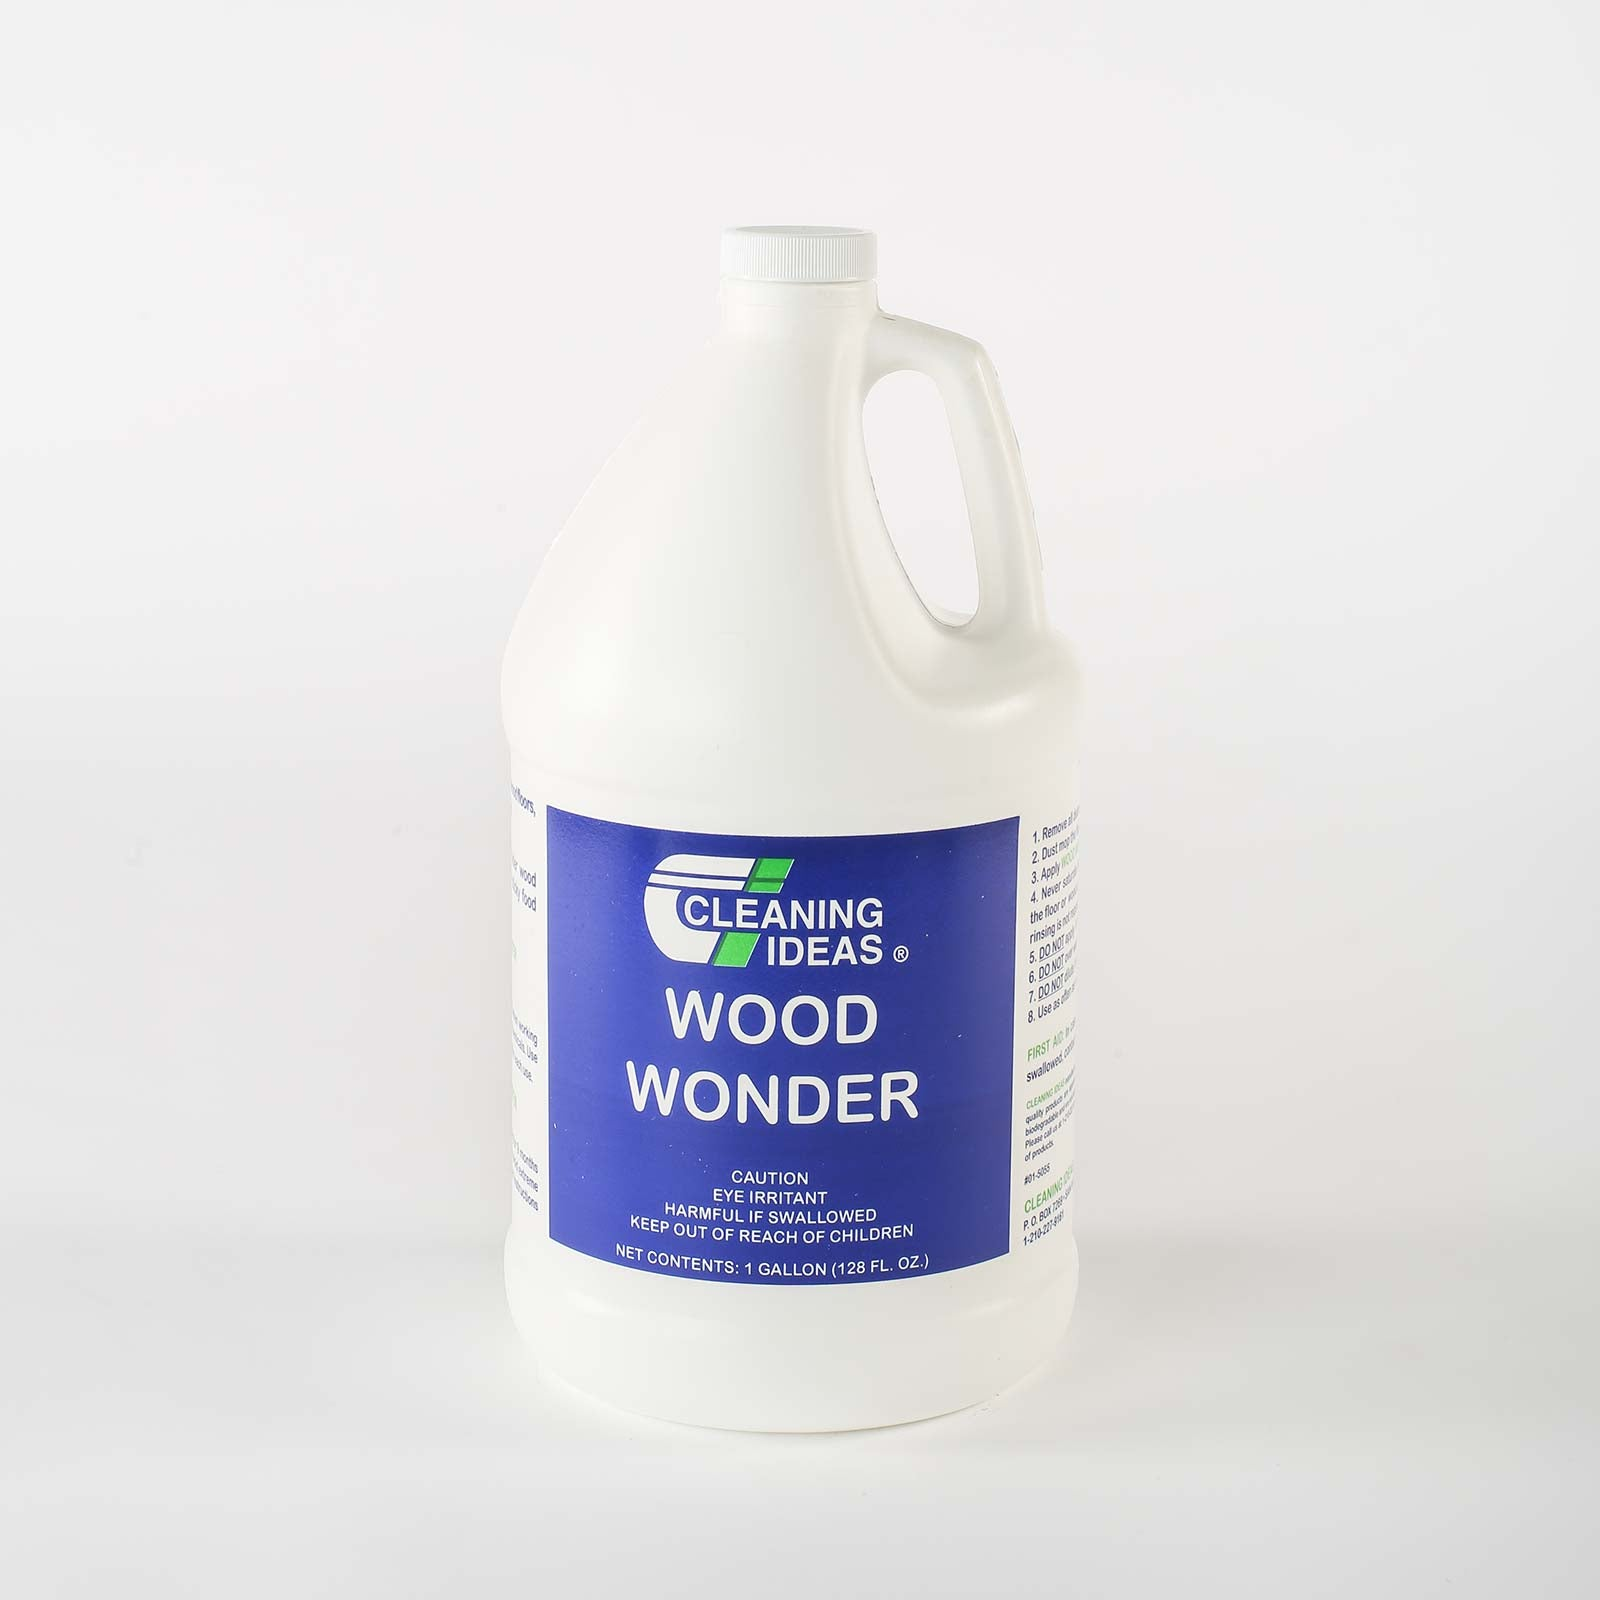 Wood Wonder Wood Cleaner - Cleaning Ideas